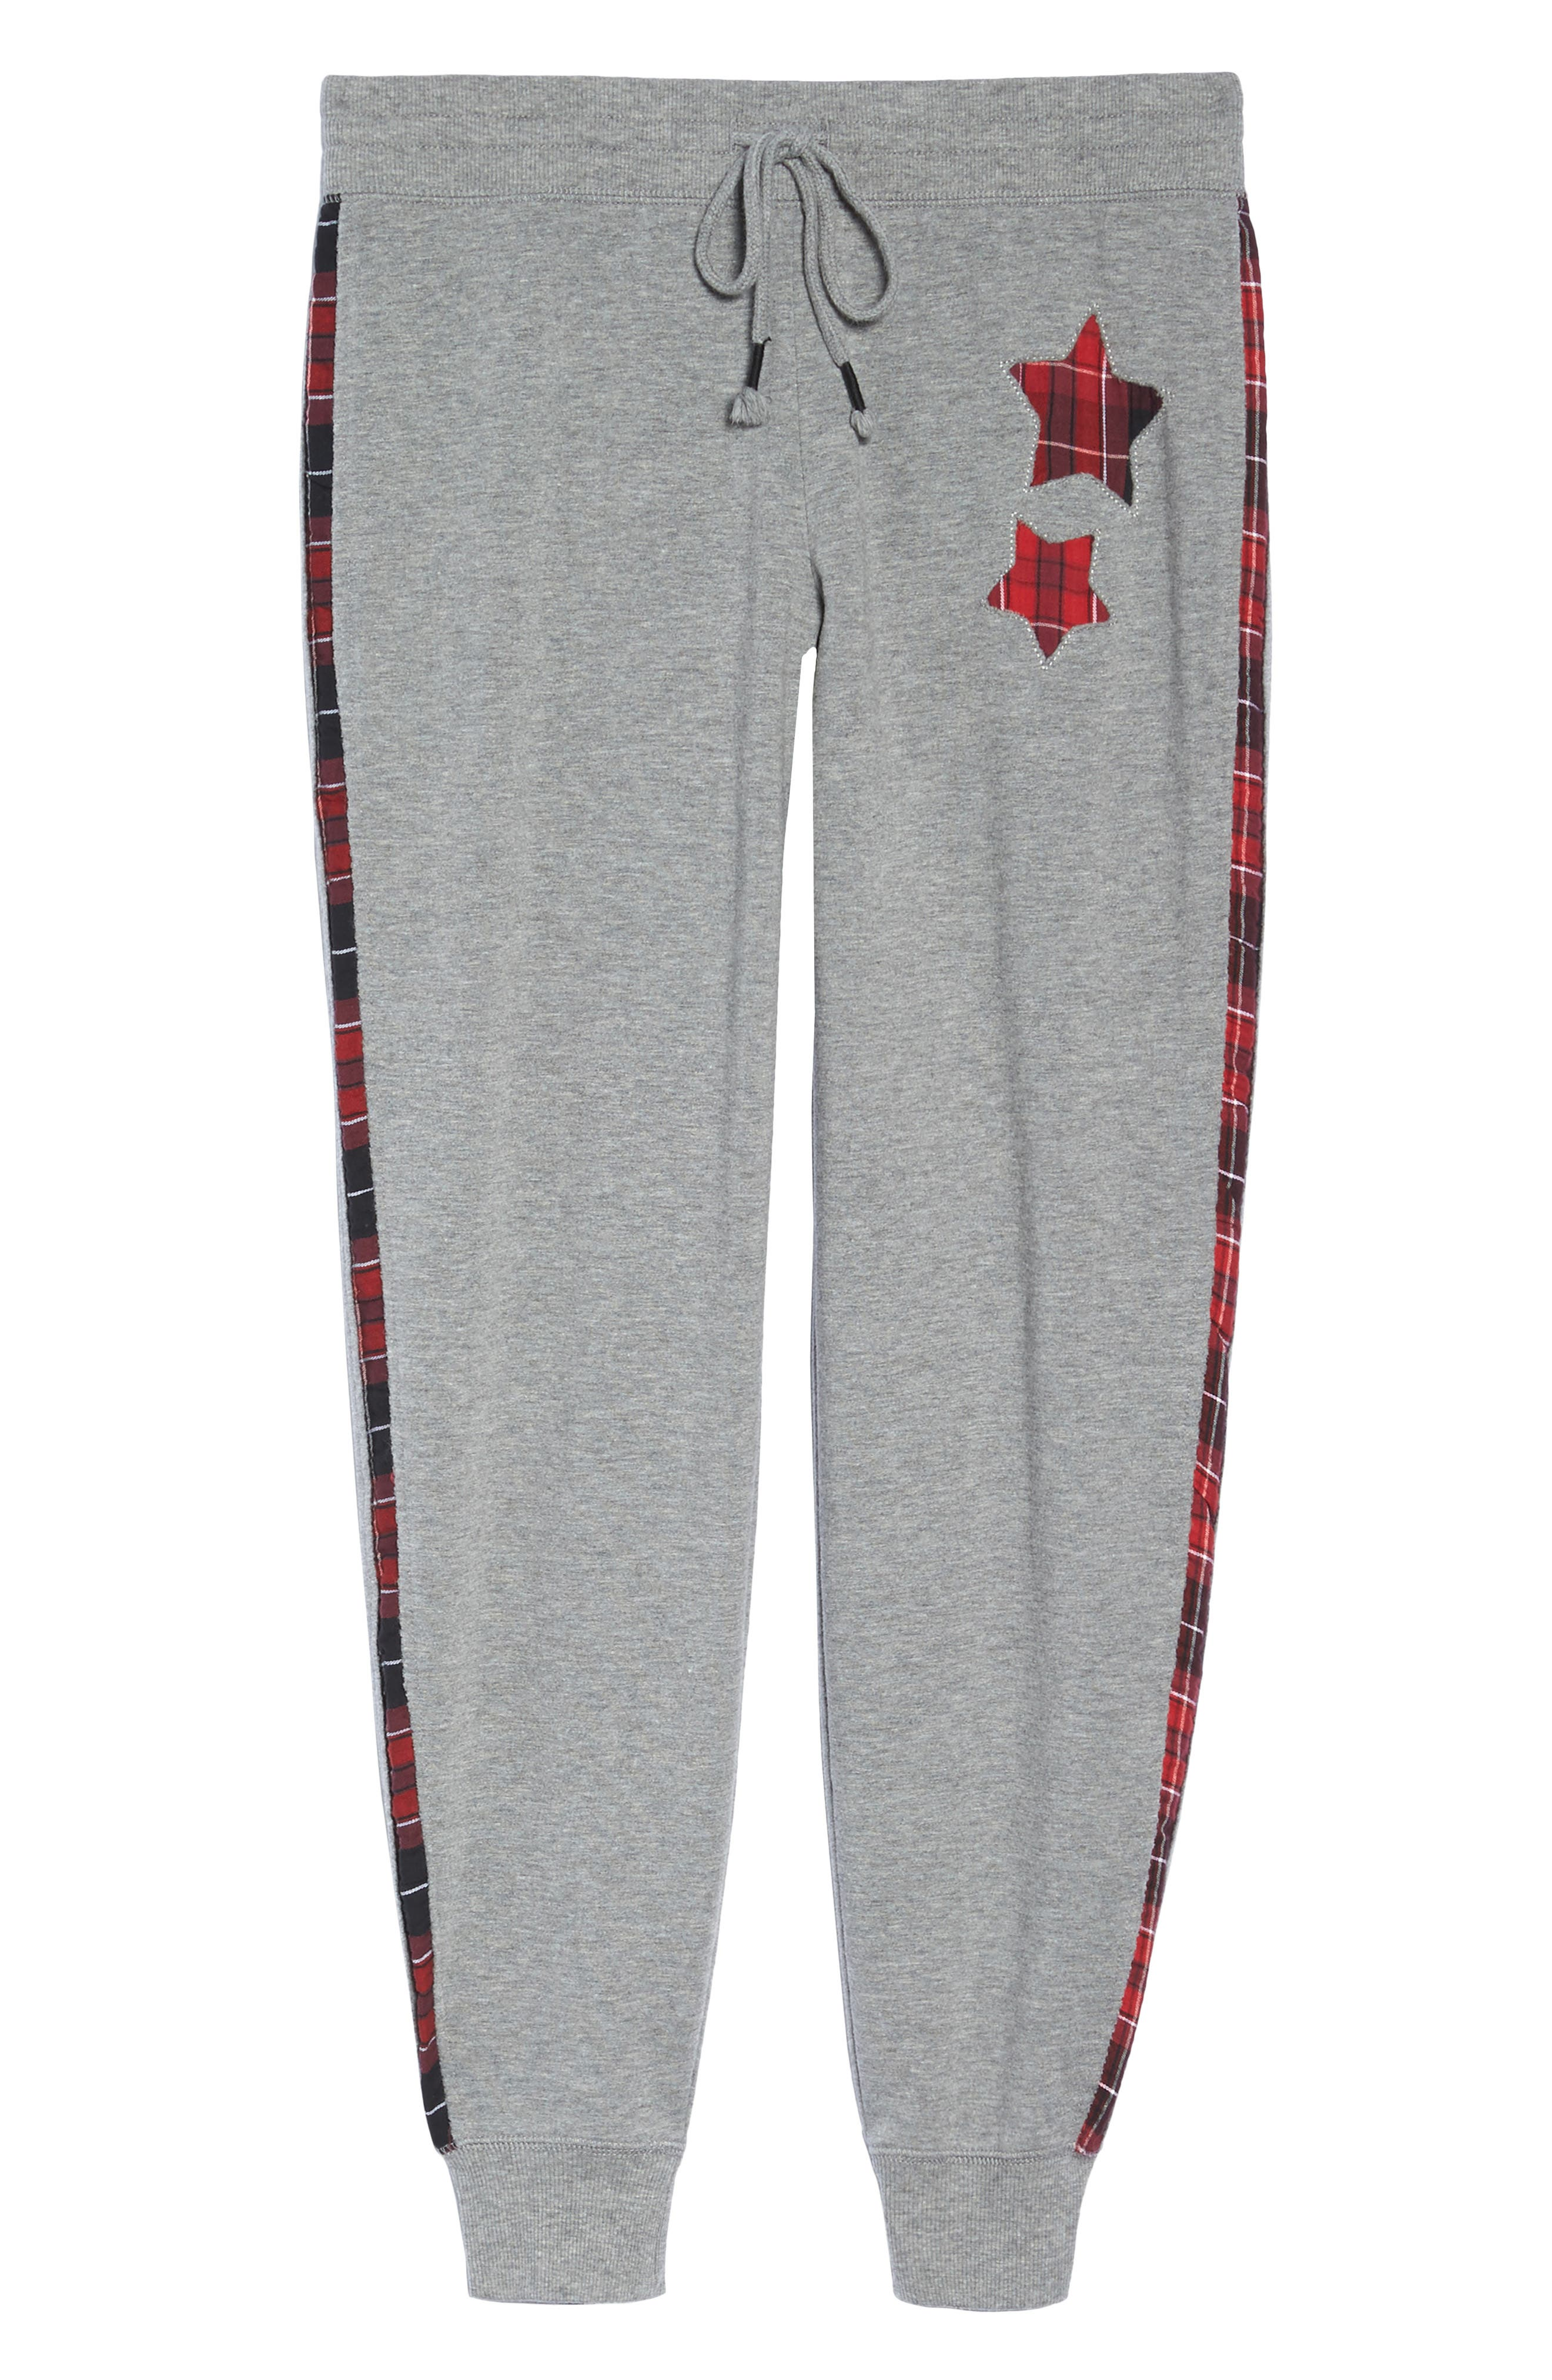 Lounge Jogger Pants,                             Alternate thumbnail 4, color,                             H Grey